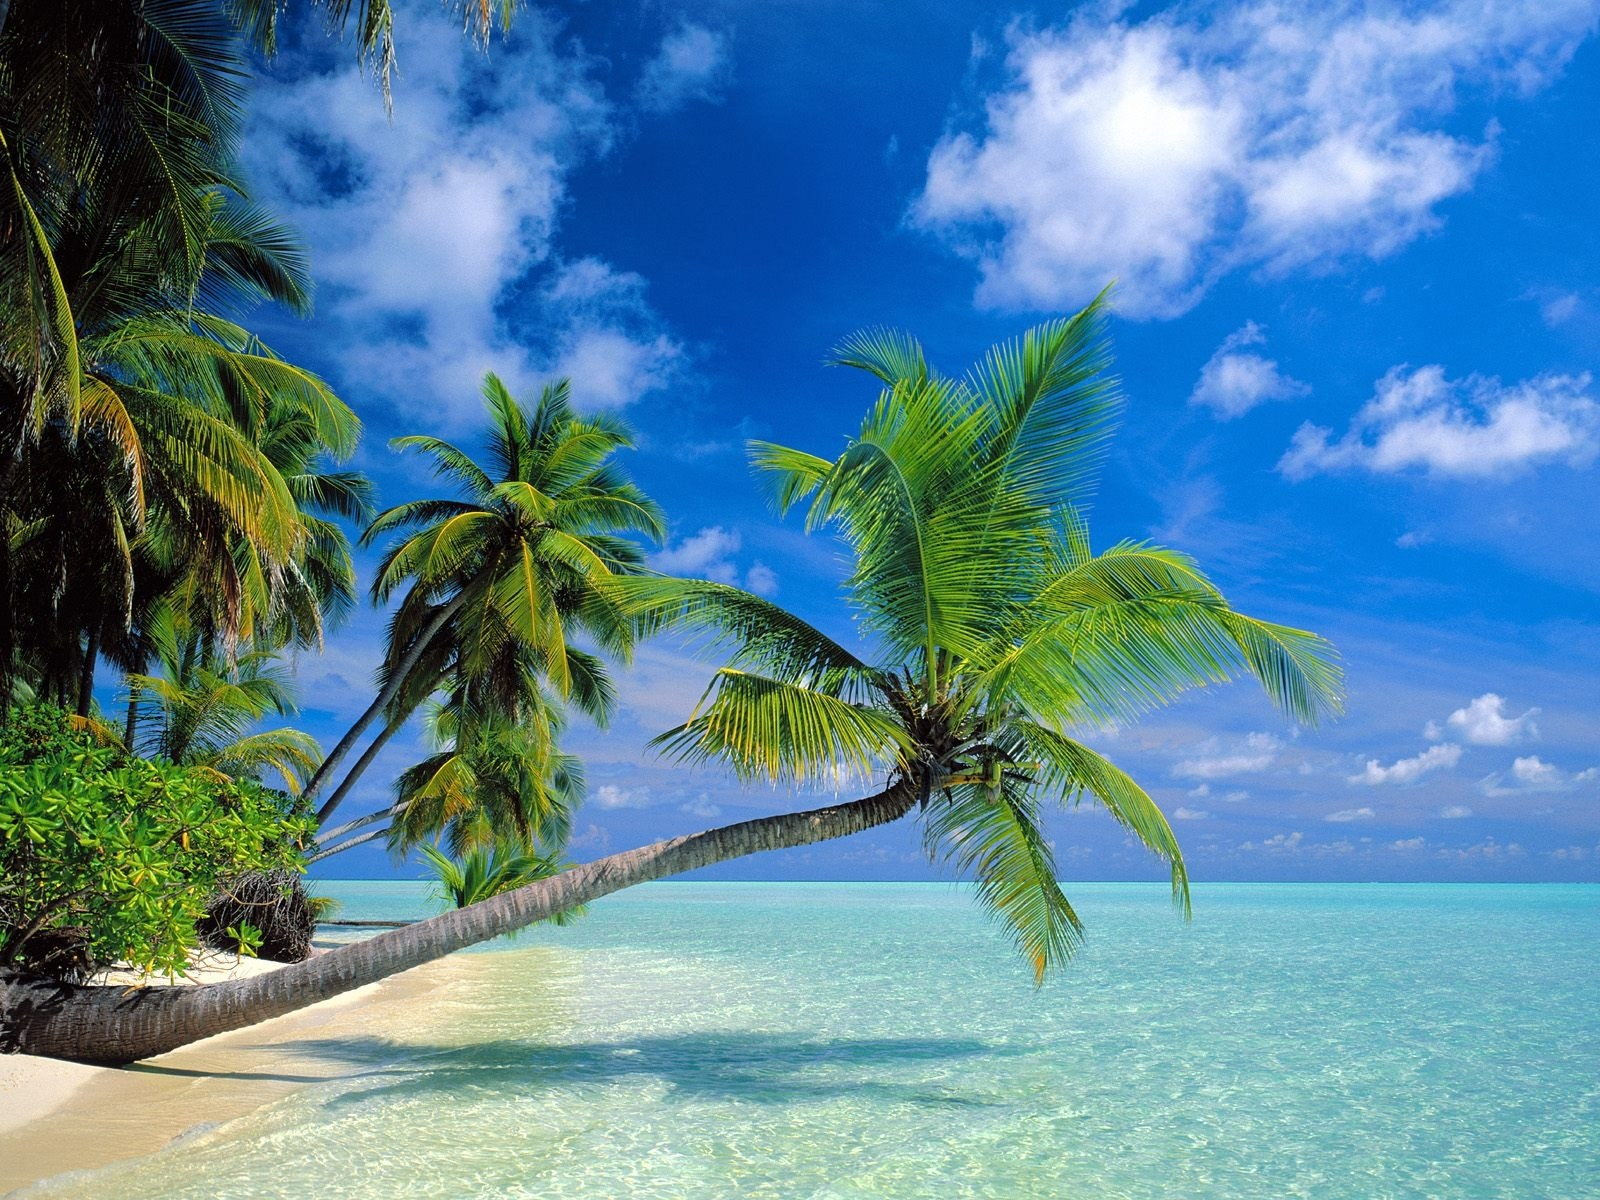 Beach Desktop Backgrounds and Wallpaper   TropicalBeach   Always 1600x1200